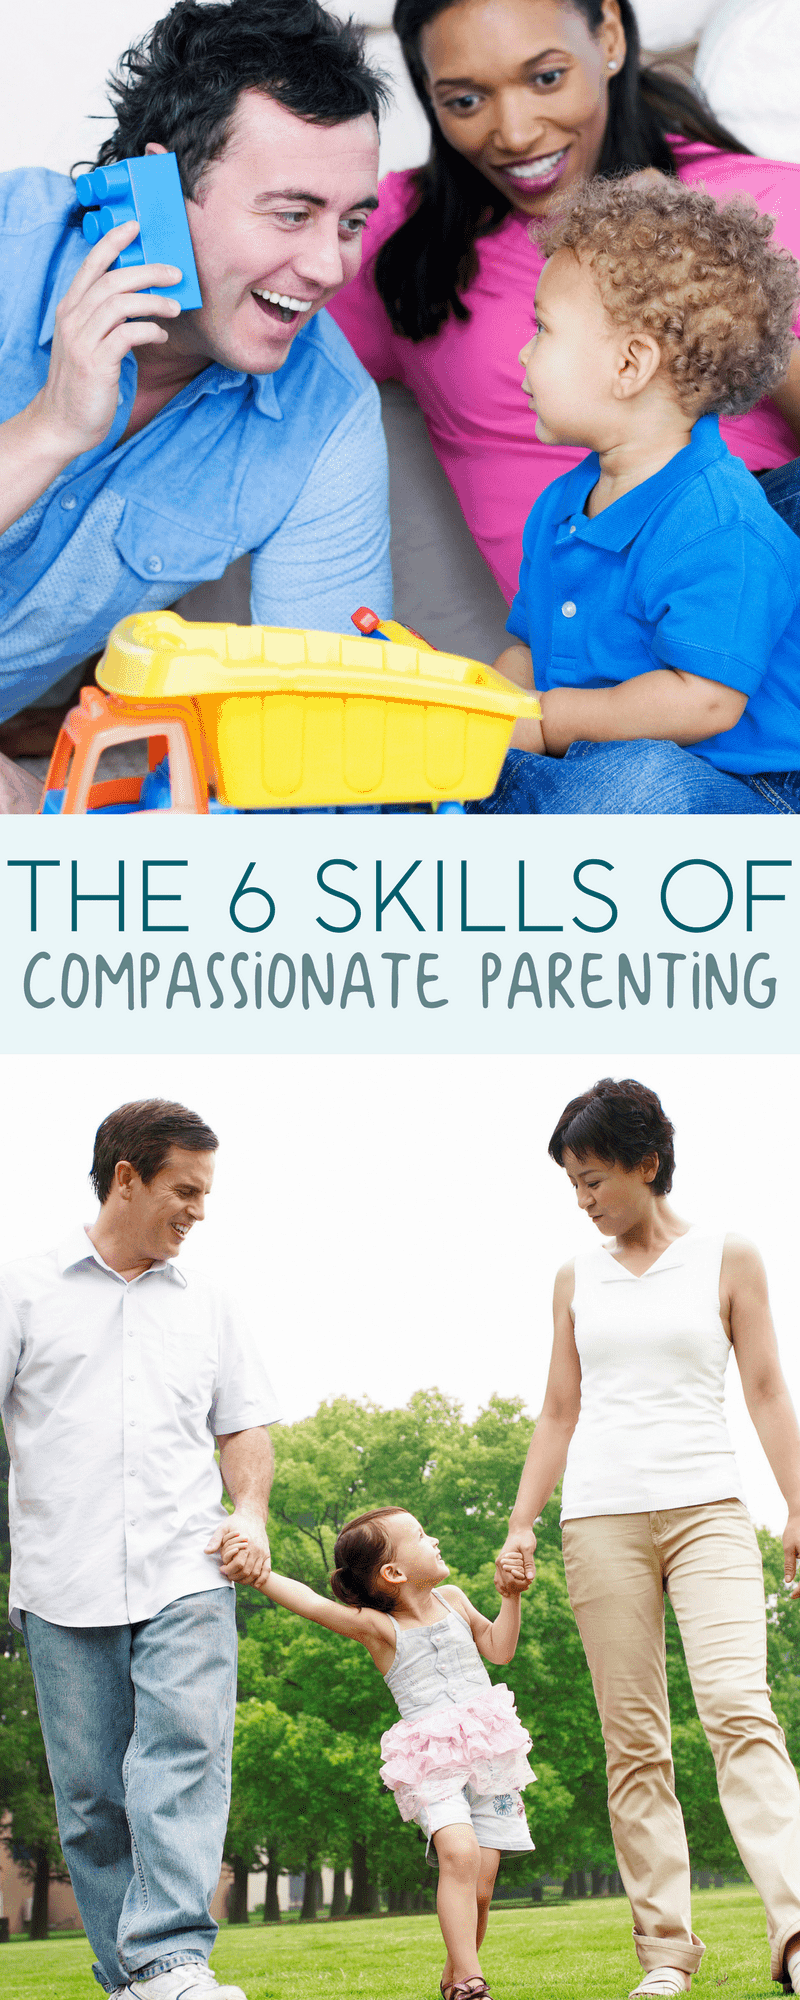 Have you ever heard of compassionate parenting? You may already be practicing some of the skills.